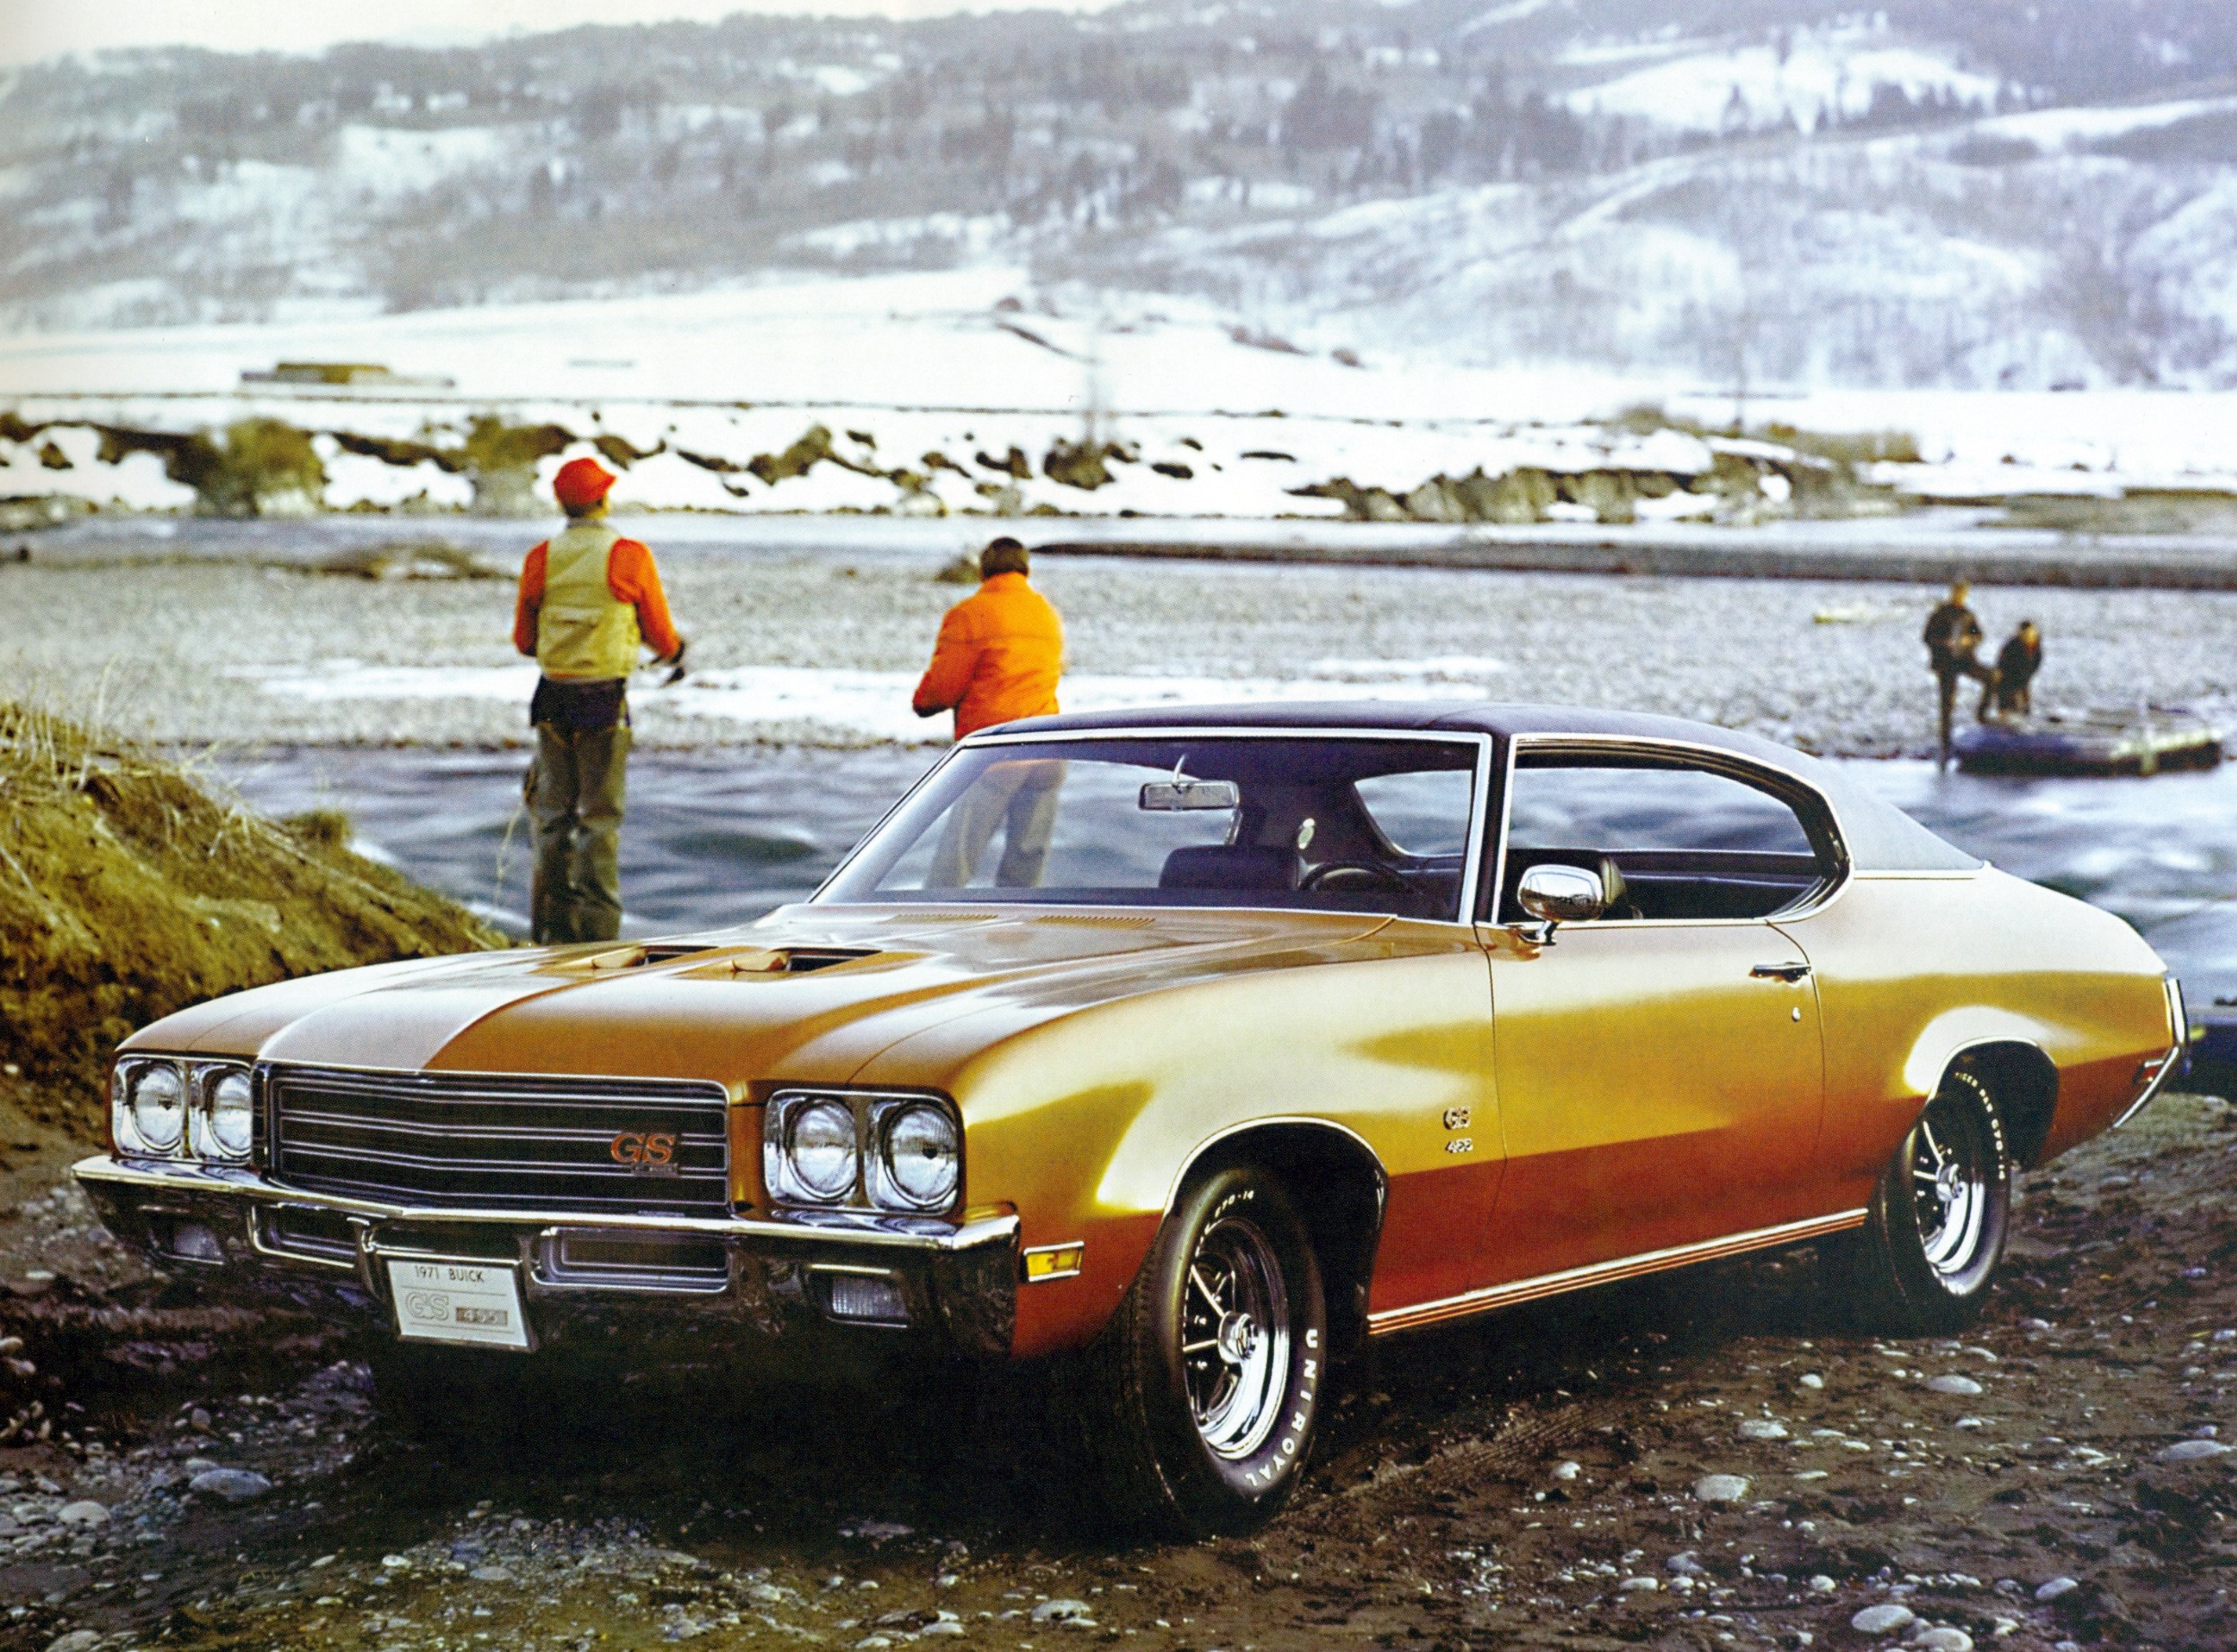 1971 buick gs 455 images pictures and videos. Black Bedroom Furniture Sets. Home Design Ideas